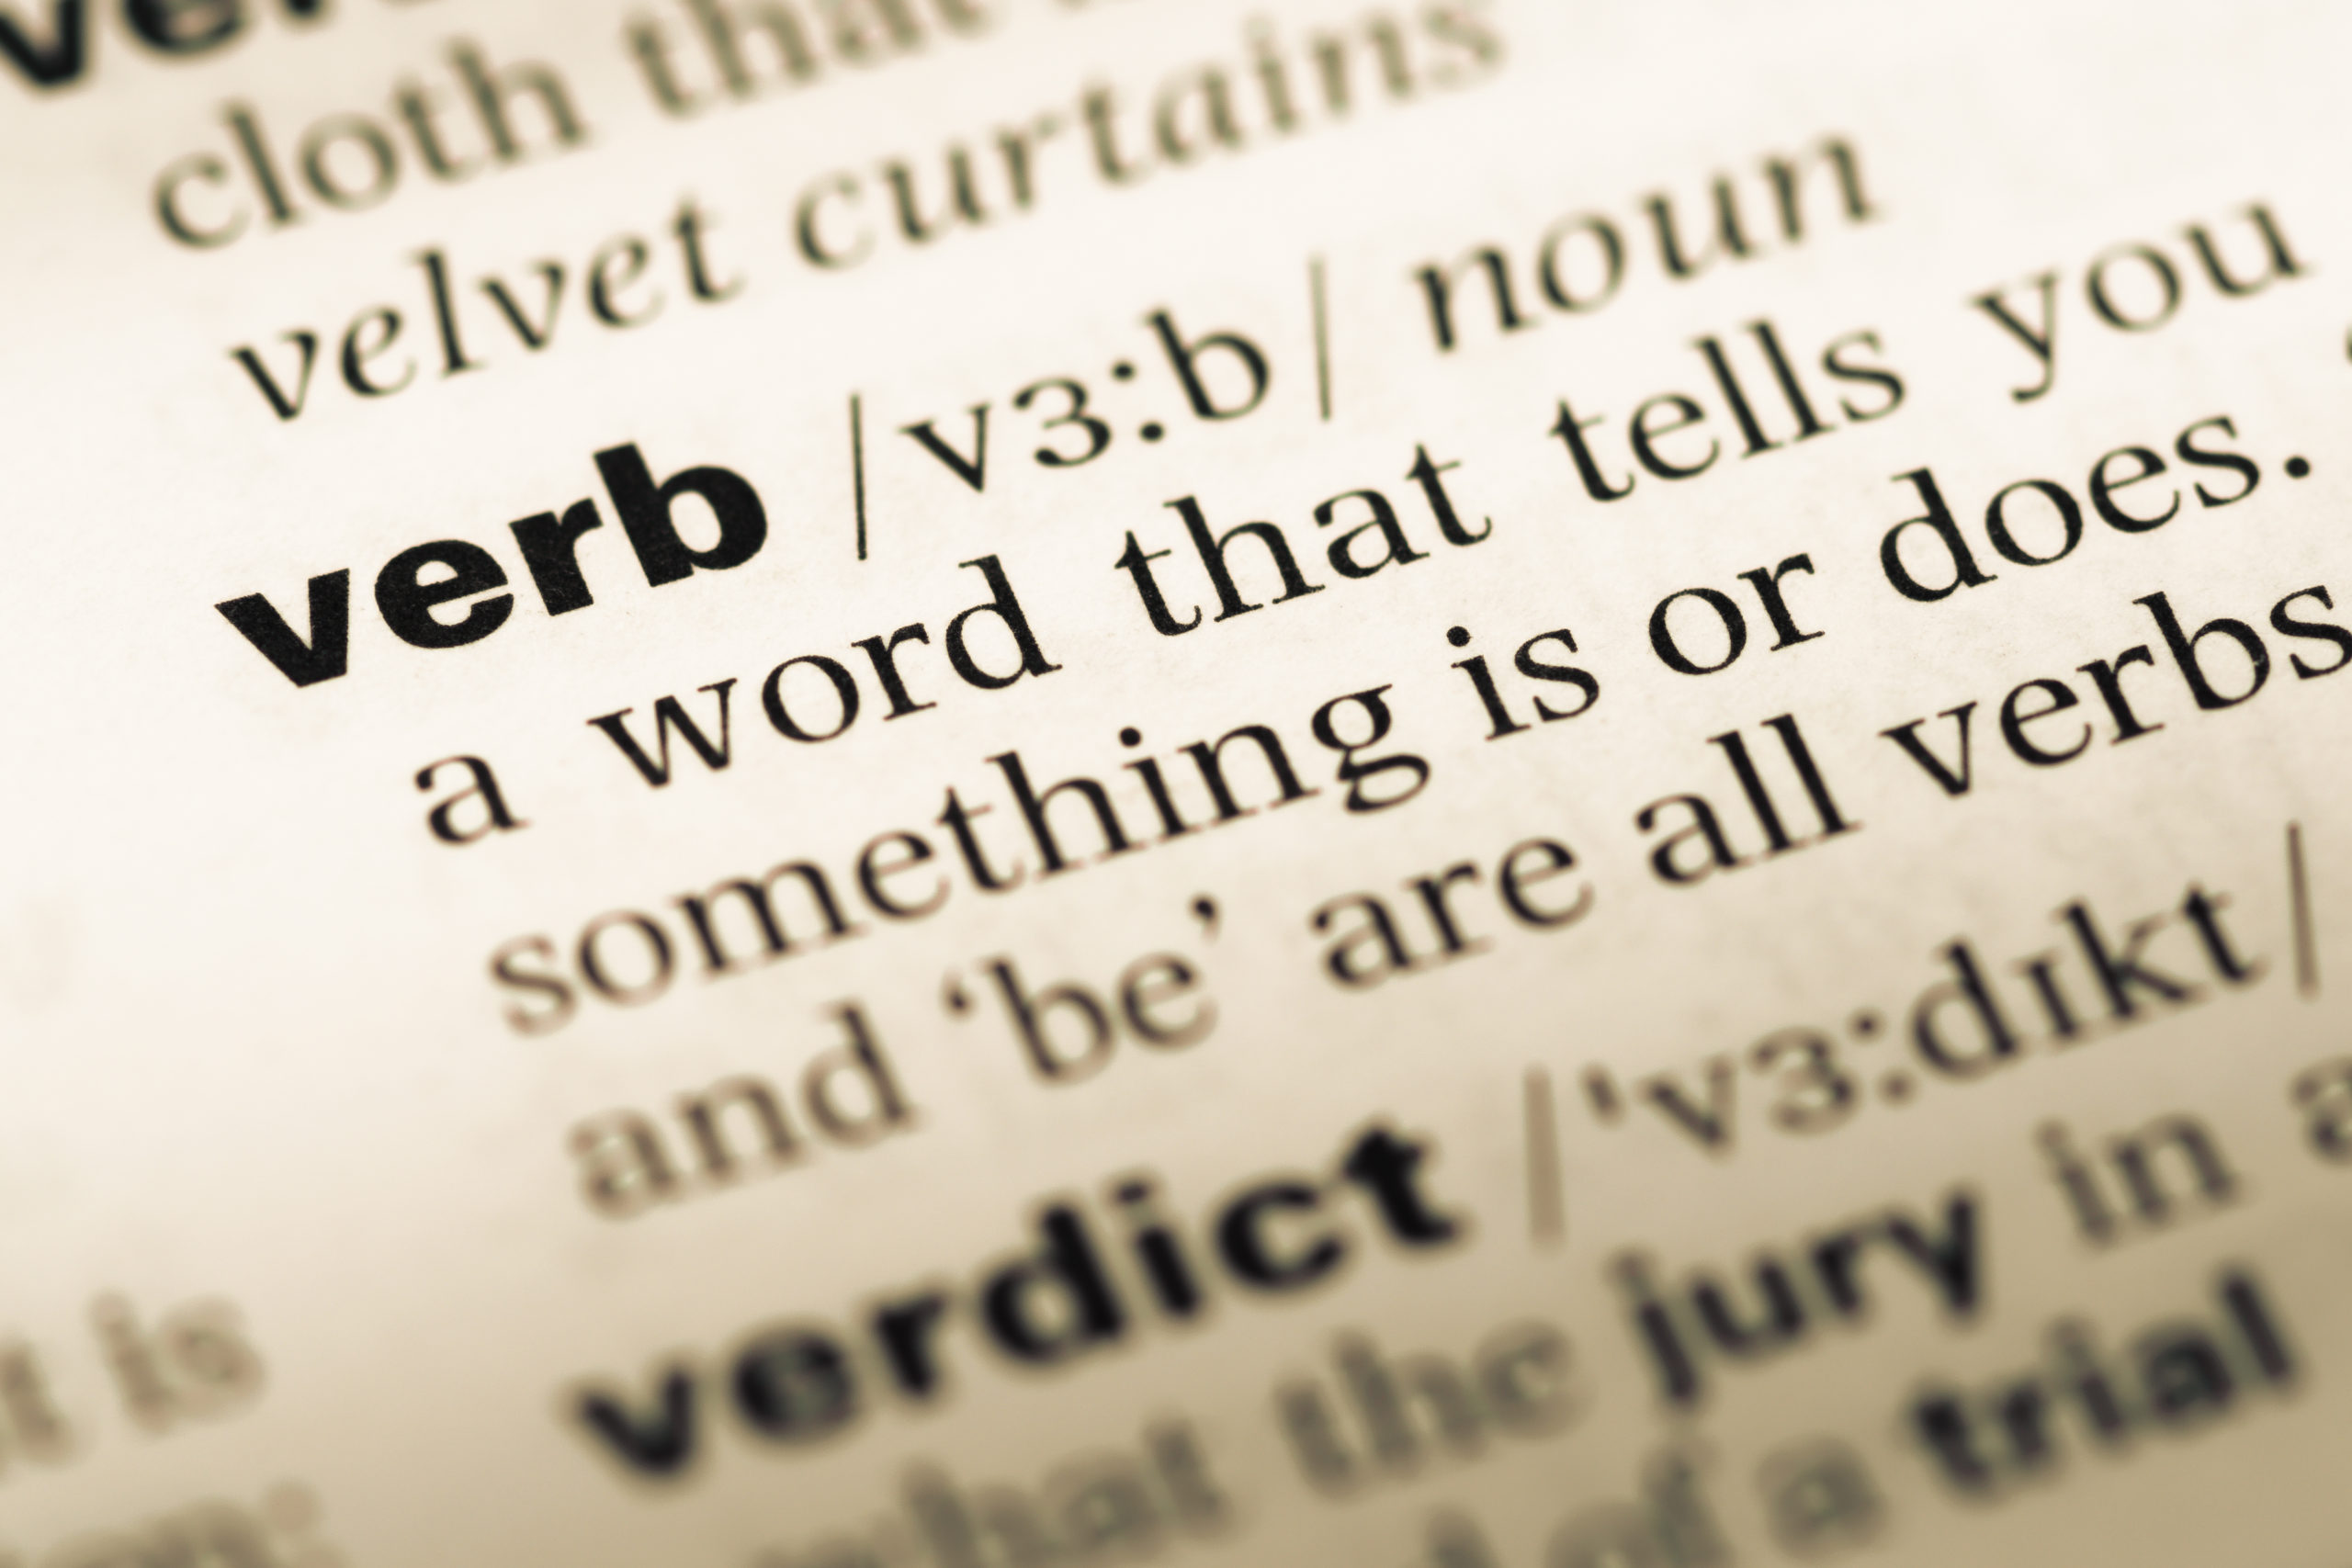 In order for you to make sentences, of course, you would need the verbs! Please check out this article about common Arabic verbs